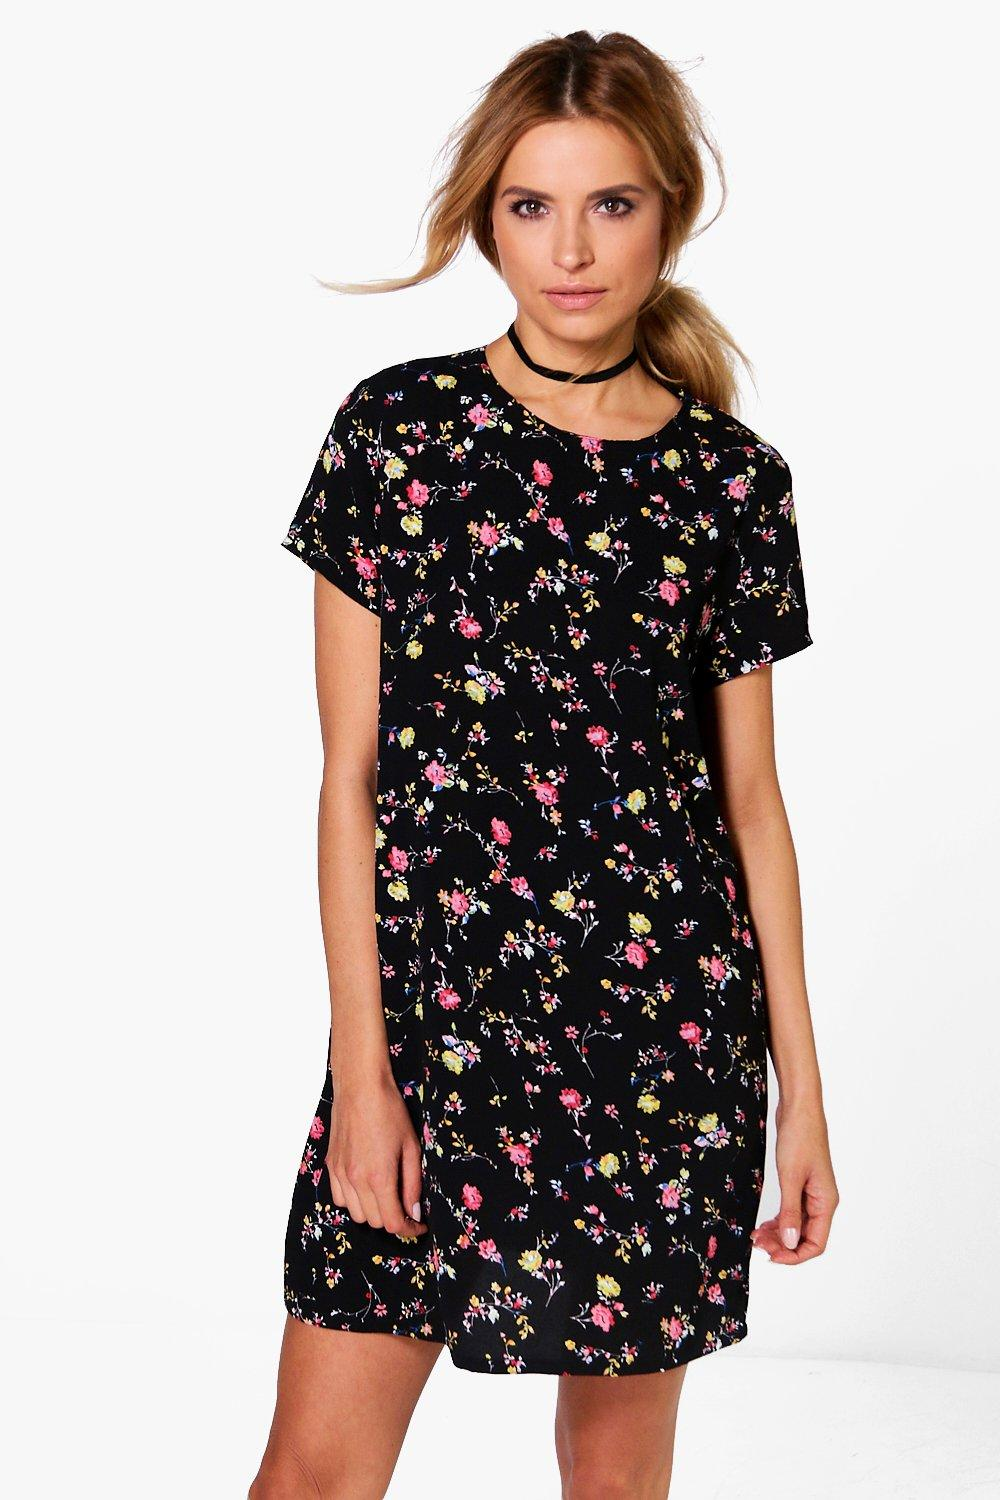 Cadence Floral Short Sleeved Shift Dress